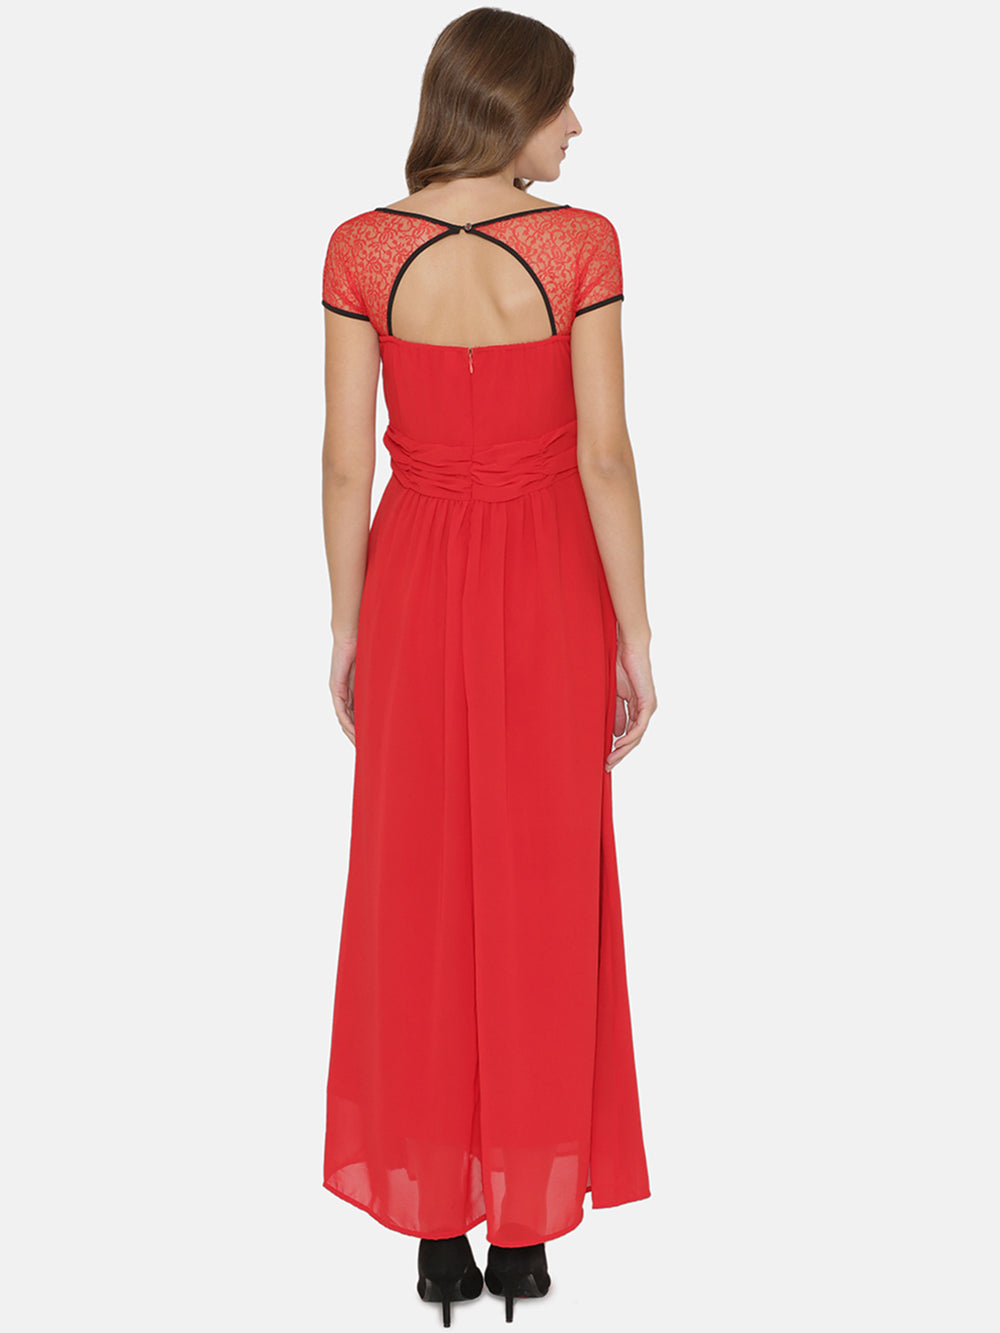 eyelet Women Red Solid Maxi Dress